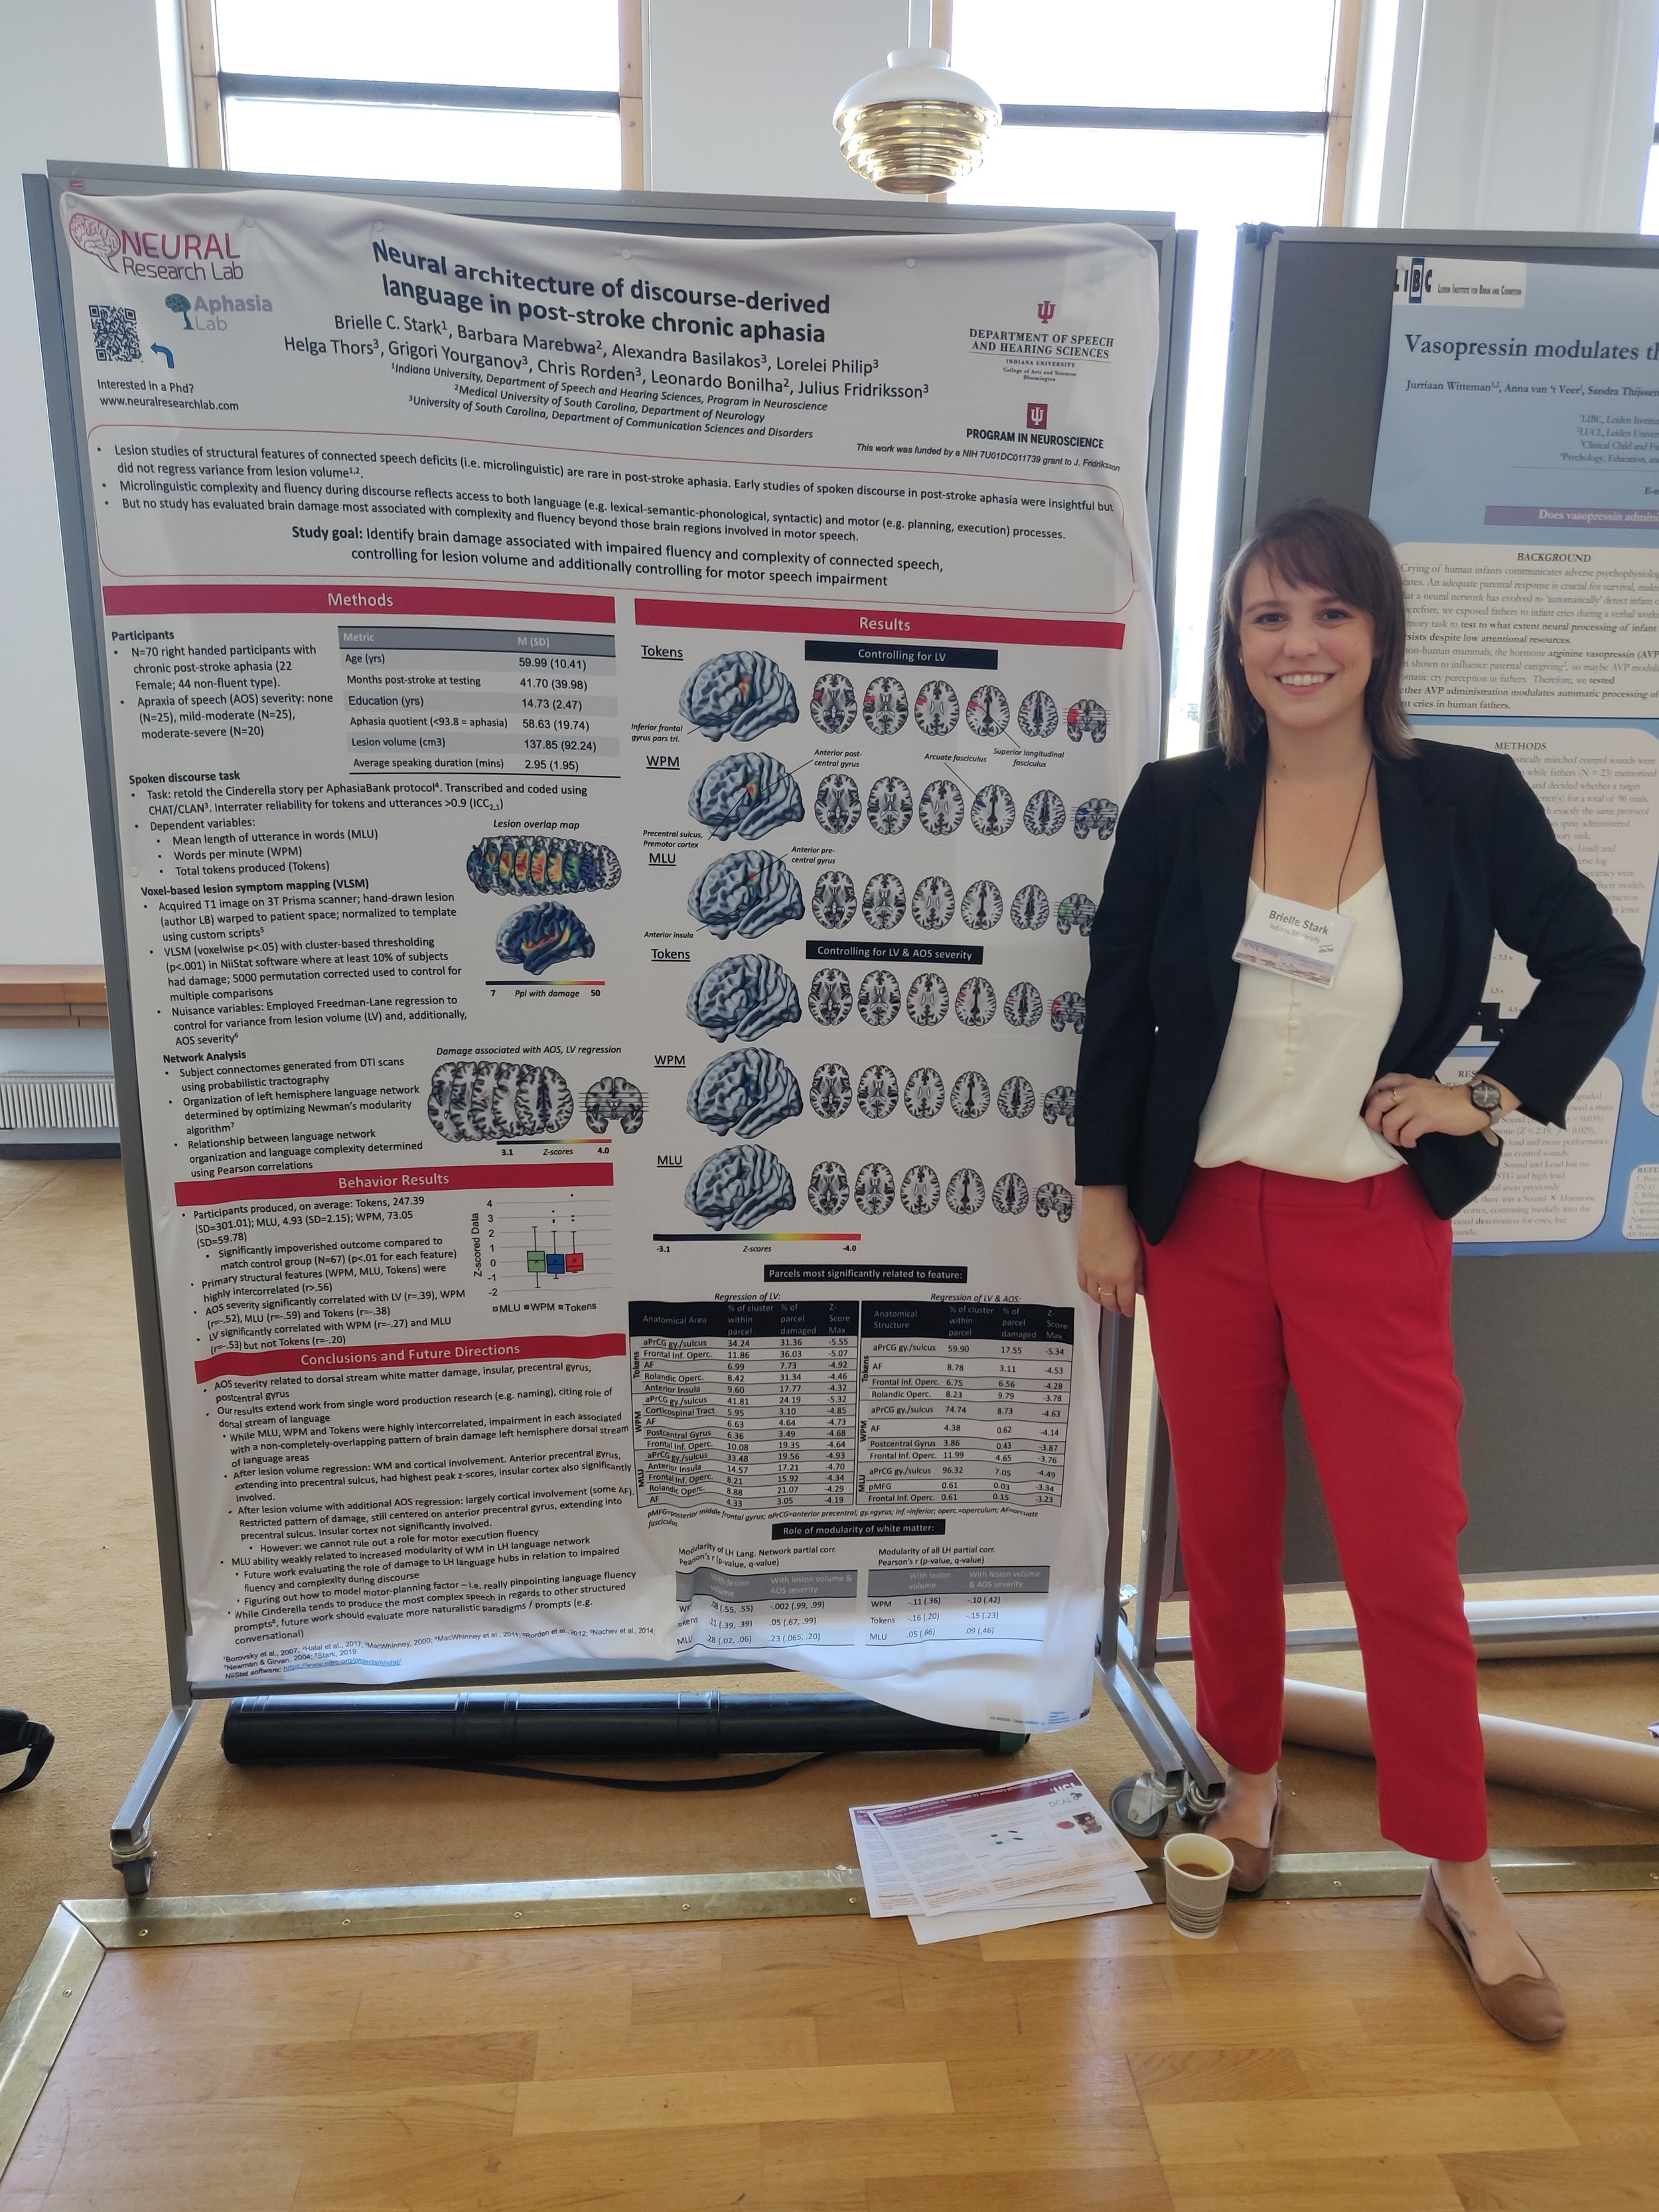 Dr. Stark presents her work on the neuroscience of discourse in aphasia, in collaboration with members of the Center for the Study of Aphasia Recovery team (cstar.sc.edu)